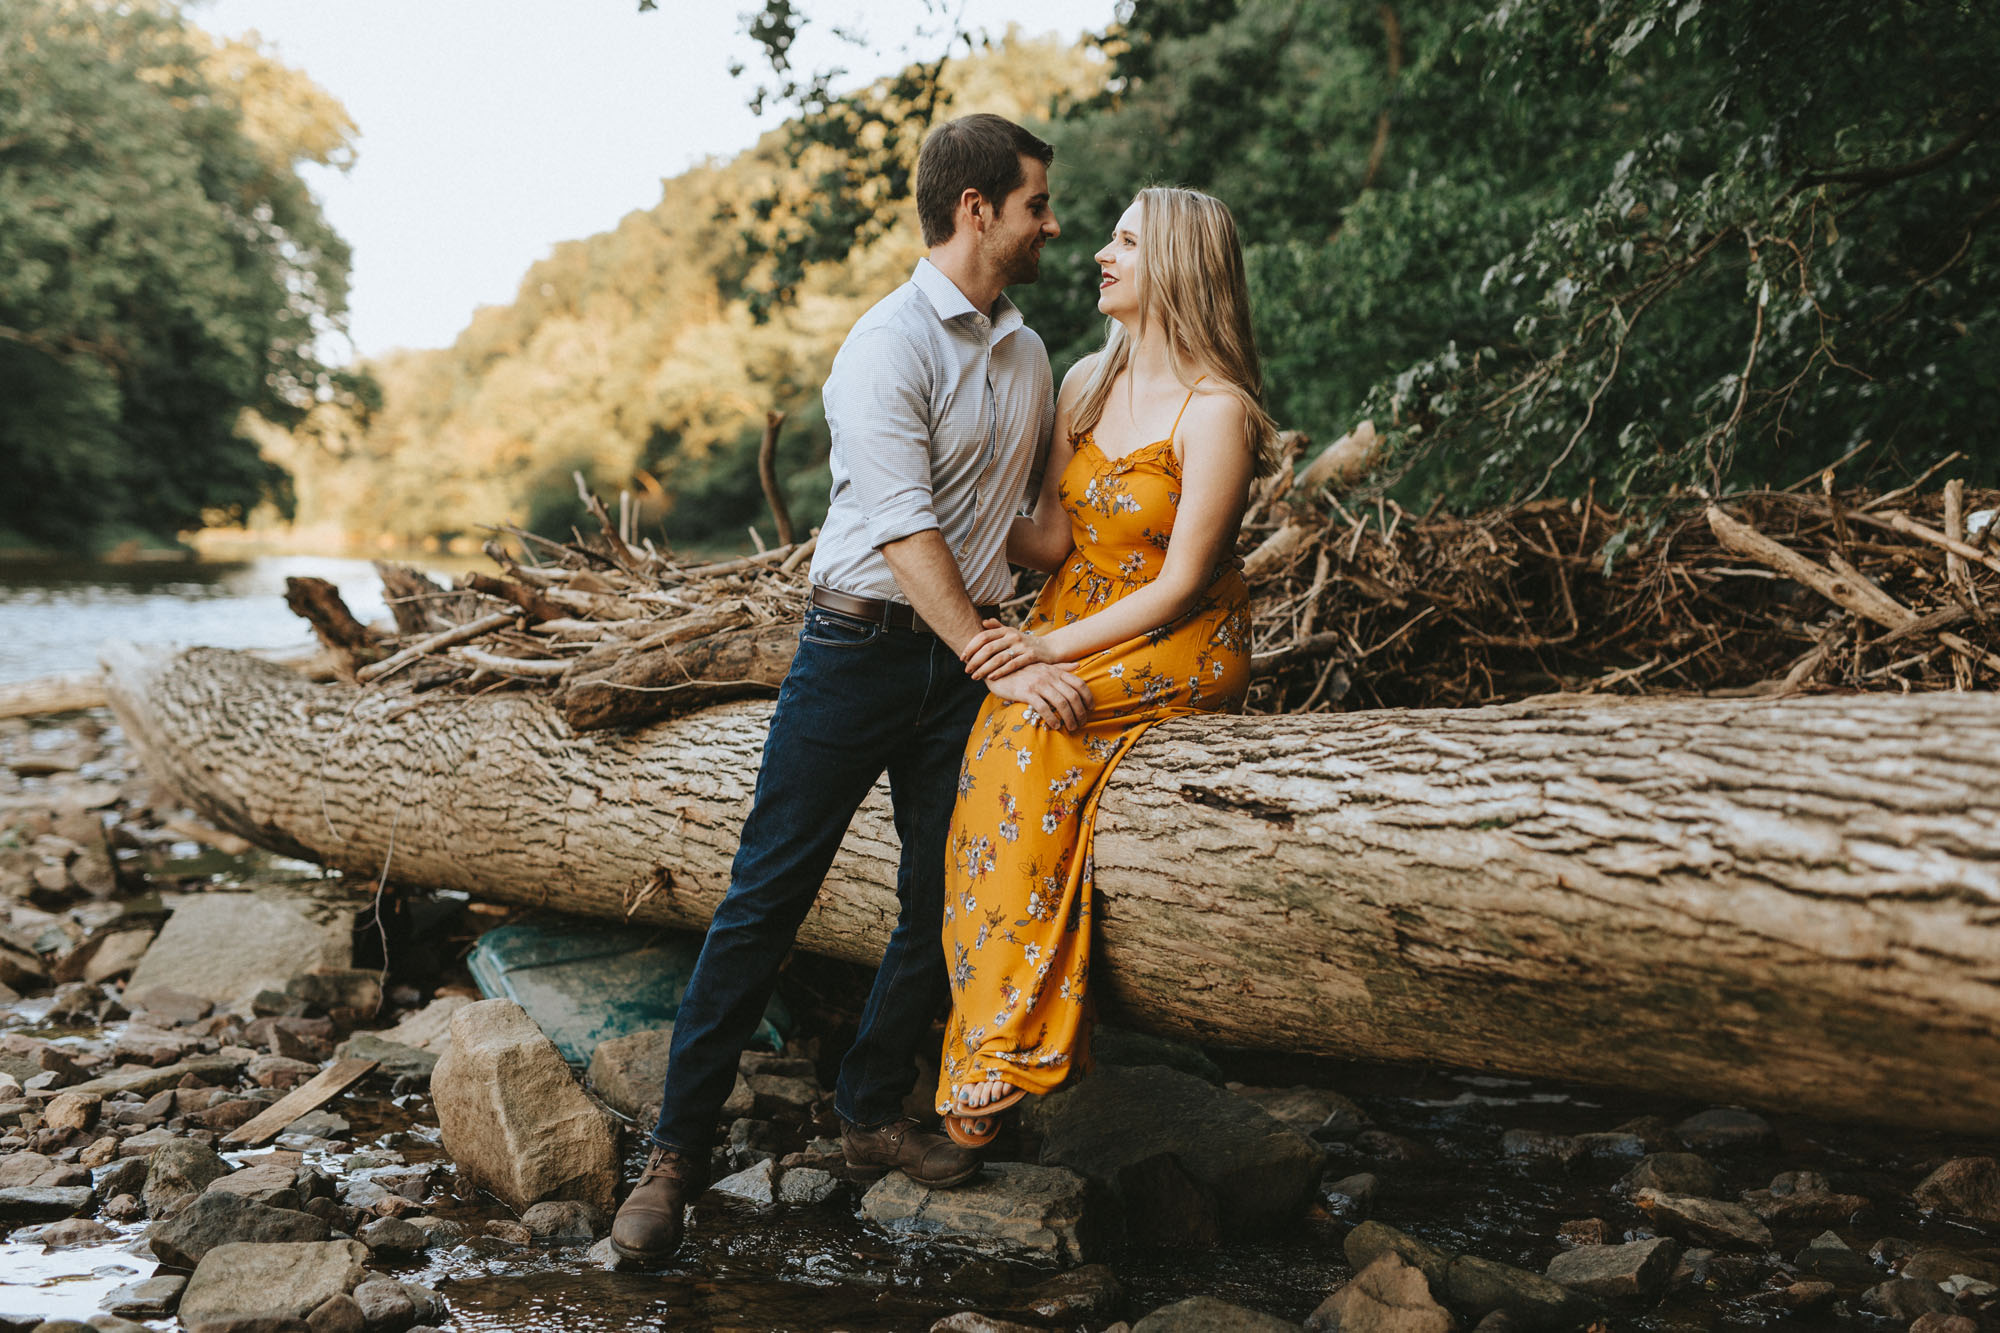 Twisted-Oaks-Jessica-Matt-EngagementI07A3381.jpg